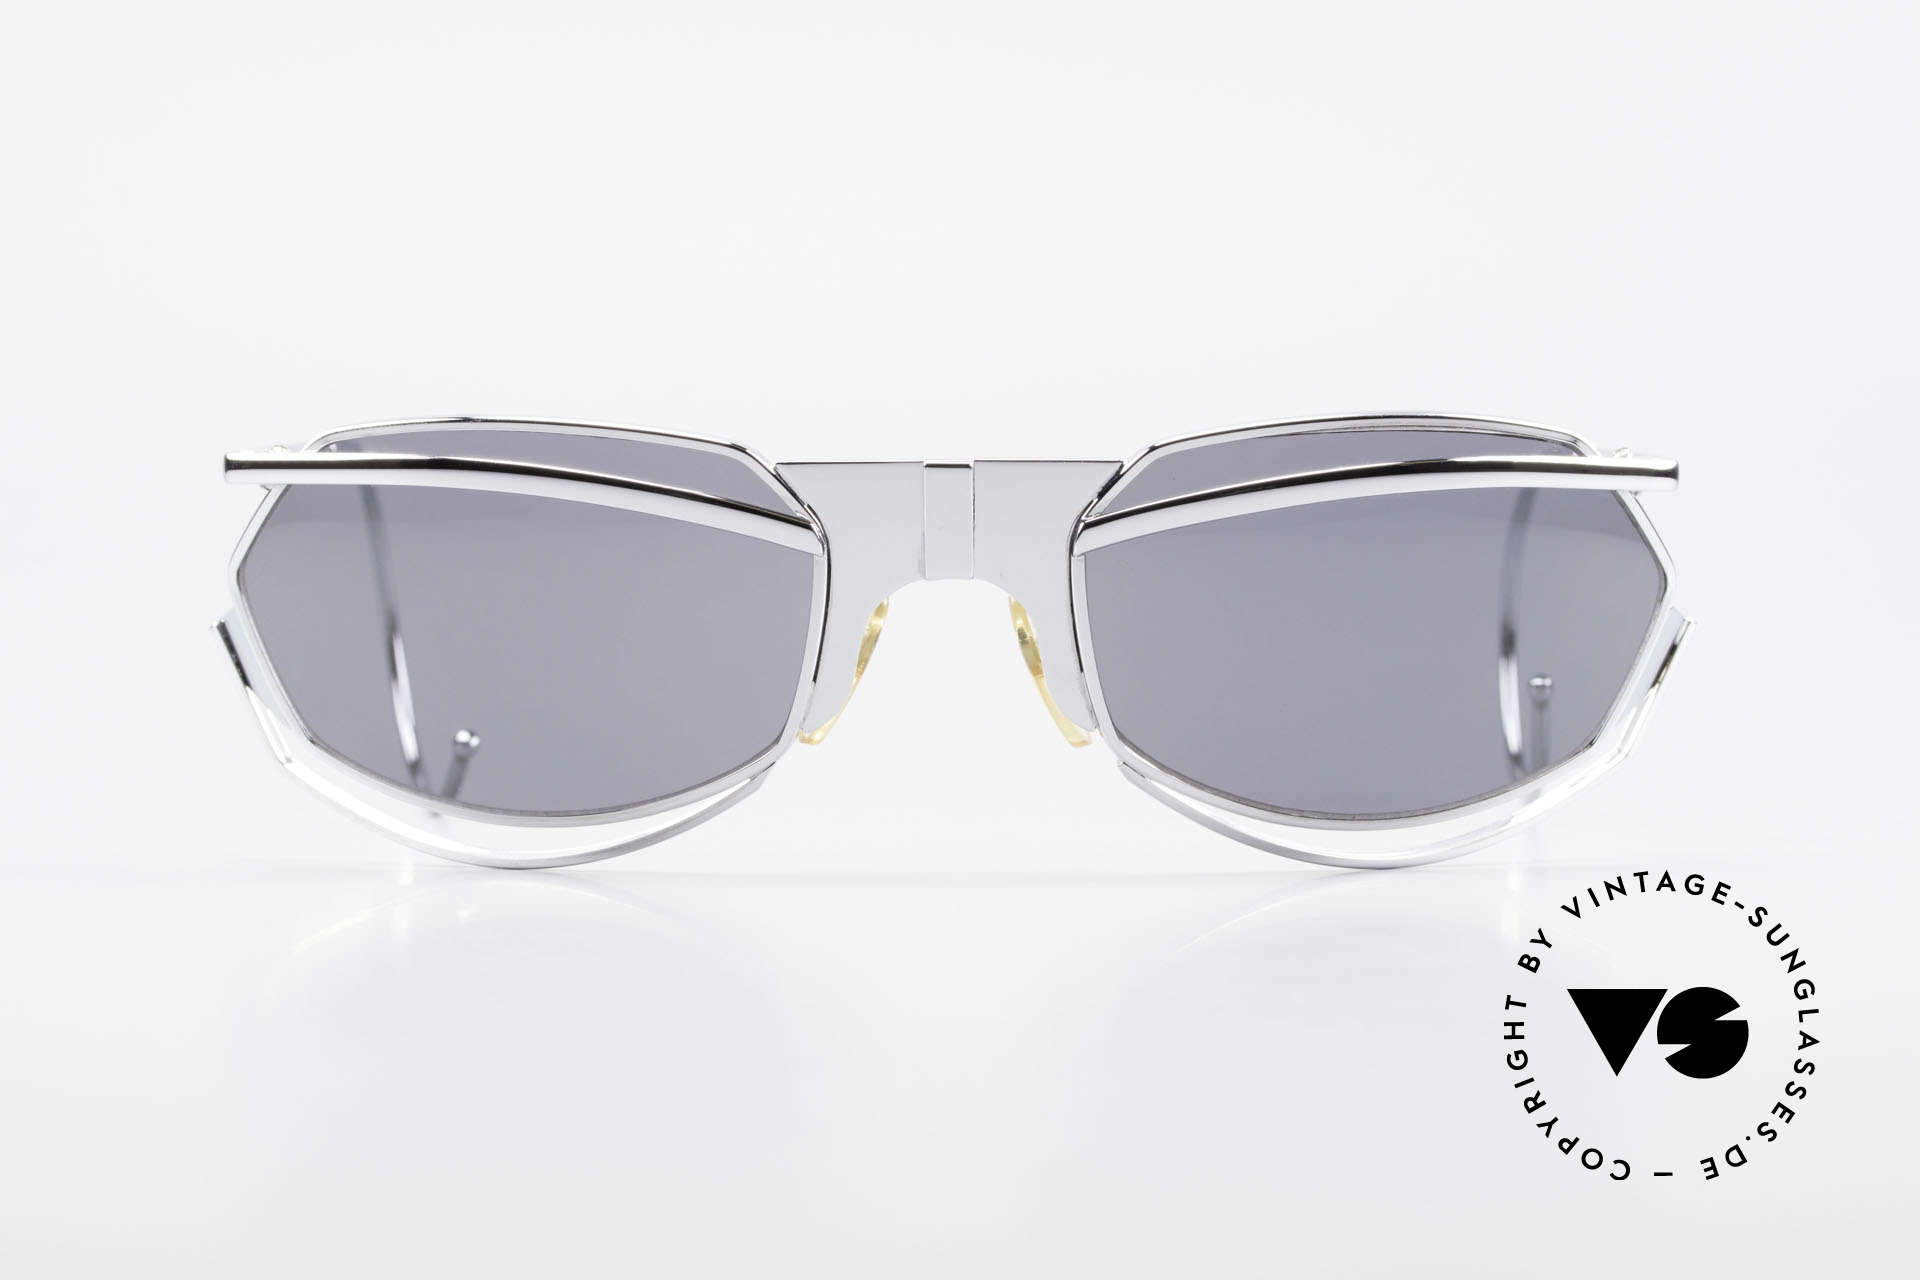 IDC G1 Folding Large Folding Sunglasses 90's, precious limited edition by Marithe & Francois Girbaud, Made for Men